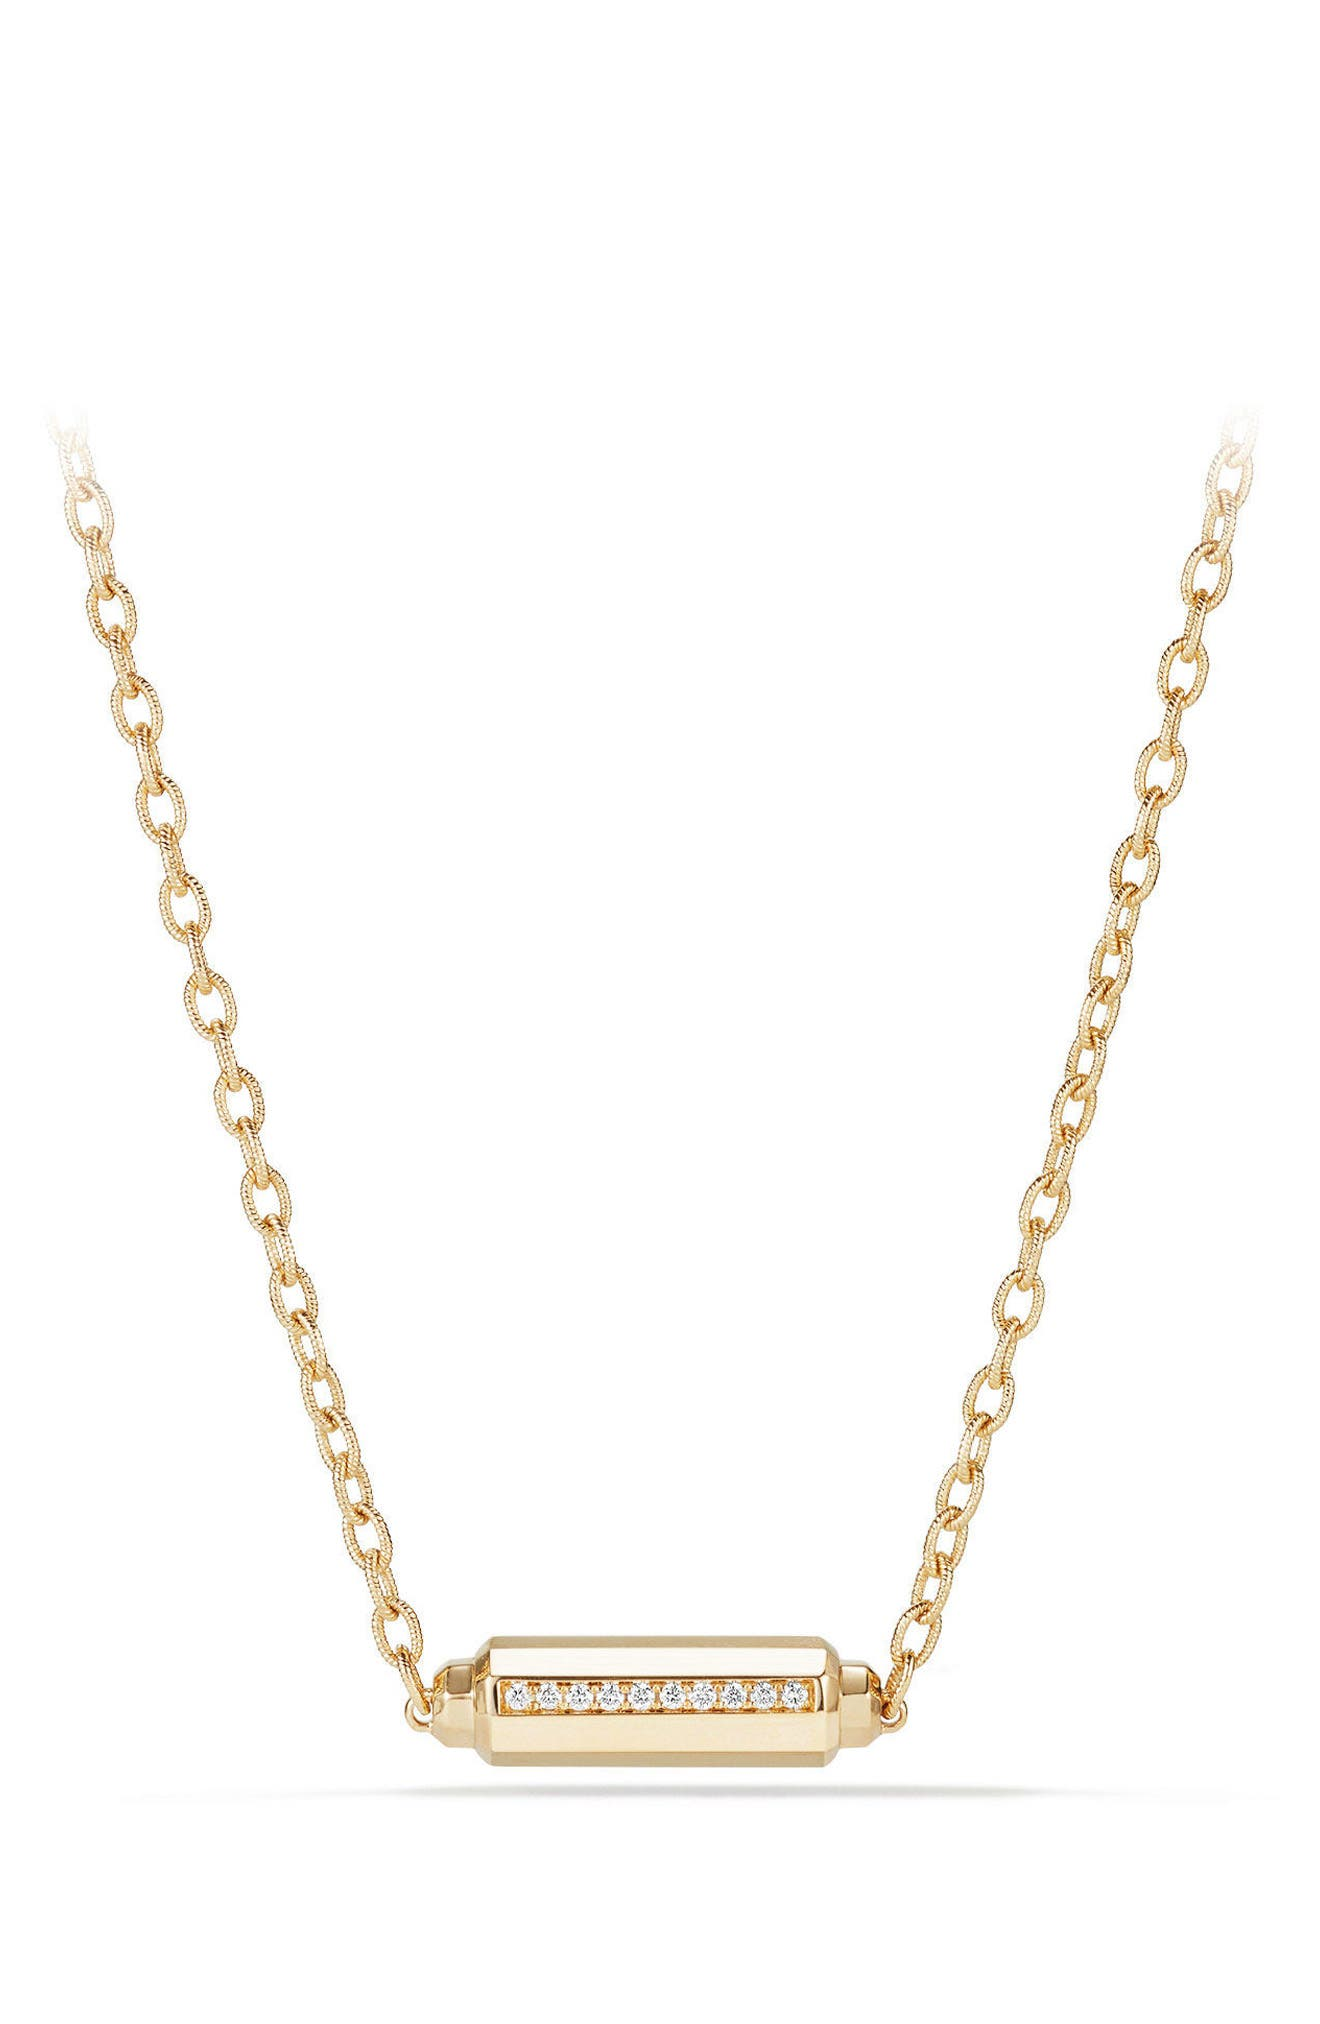 Barrels Single Station Necklace with Diamonds in 18K Gold,                         Main,                         color, YELLOW GOLD